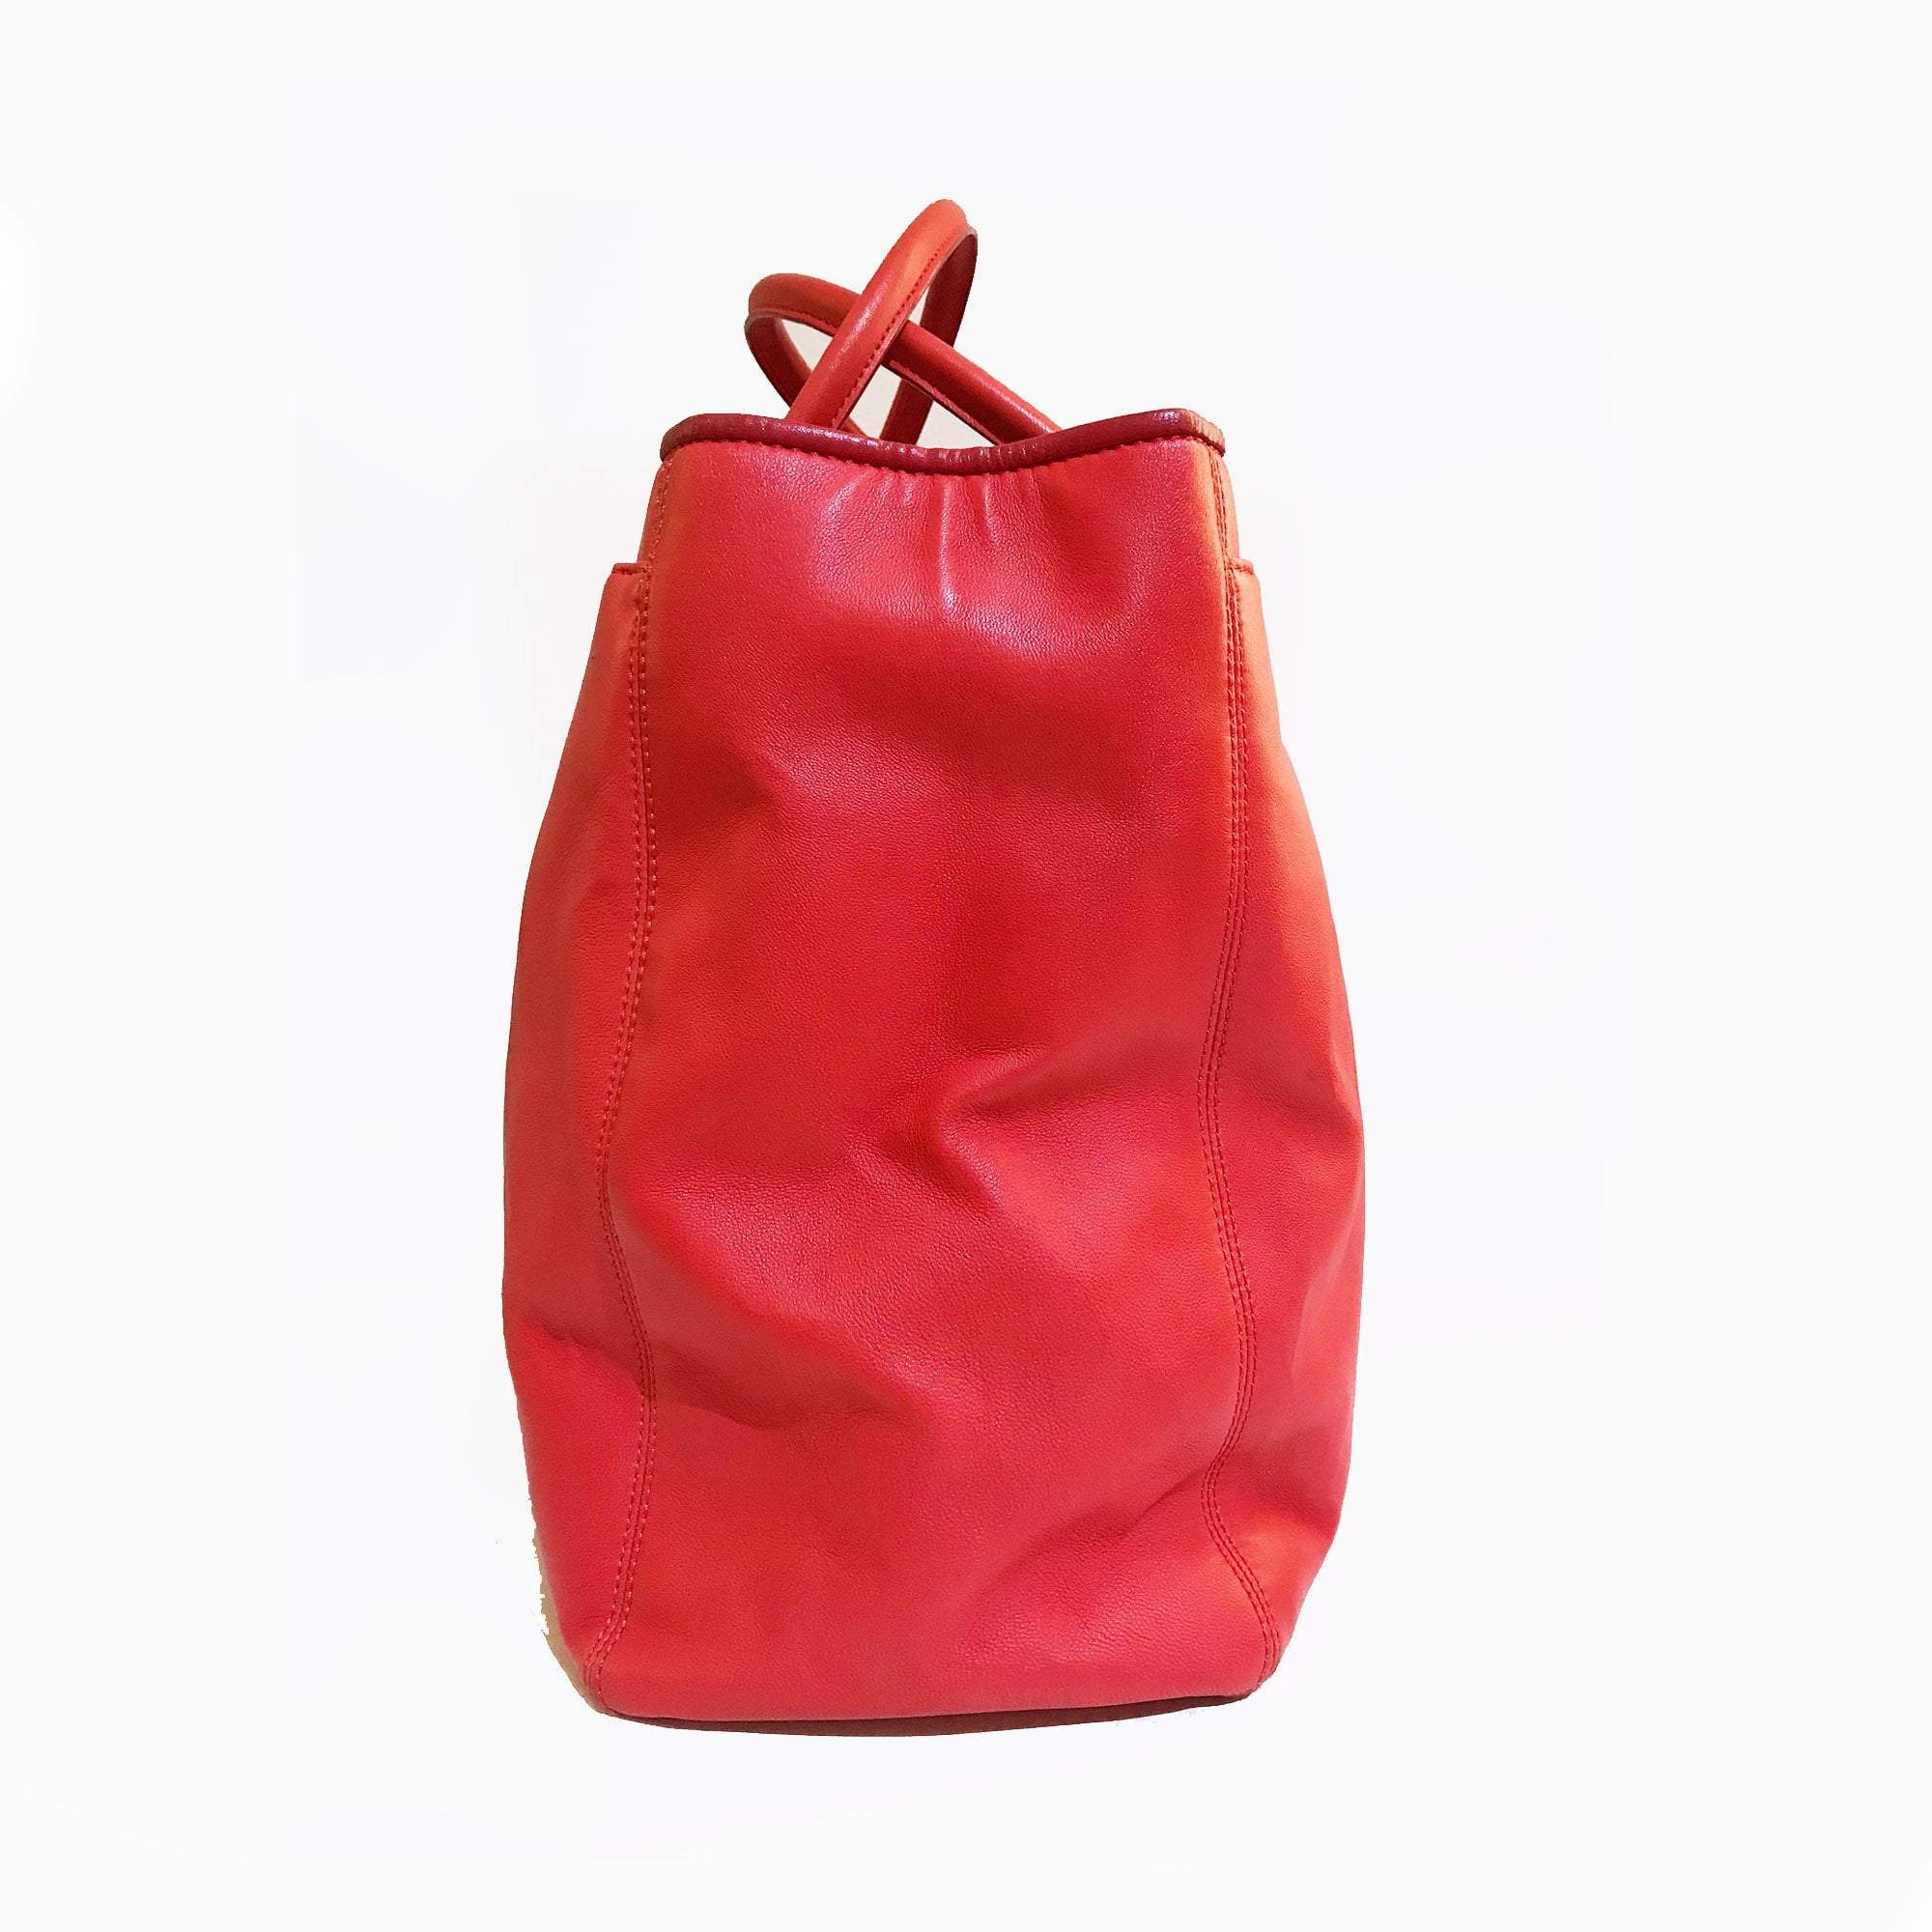 Chanel Calfskin Red Cerf Executive Shopping Tote